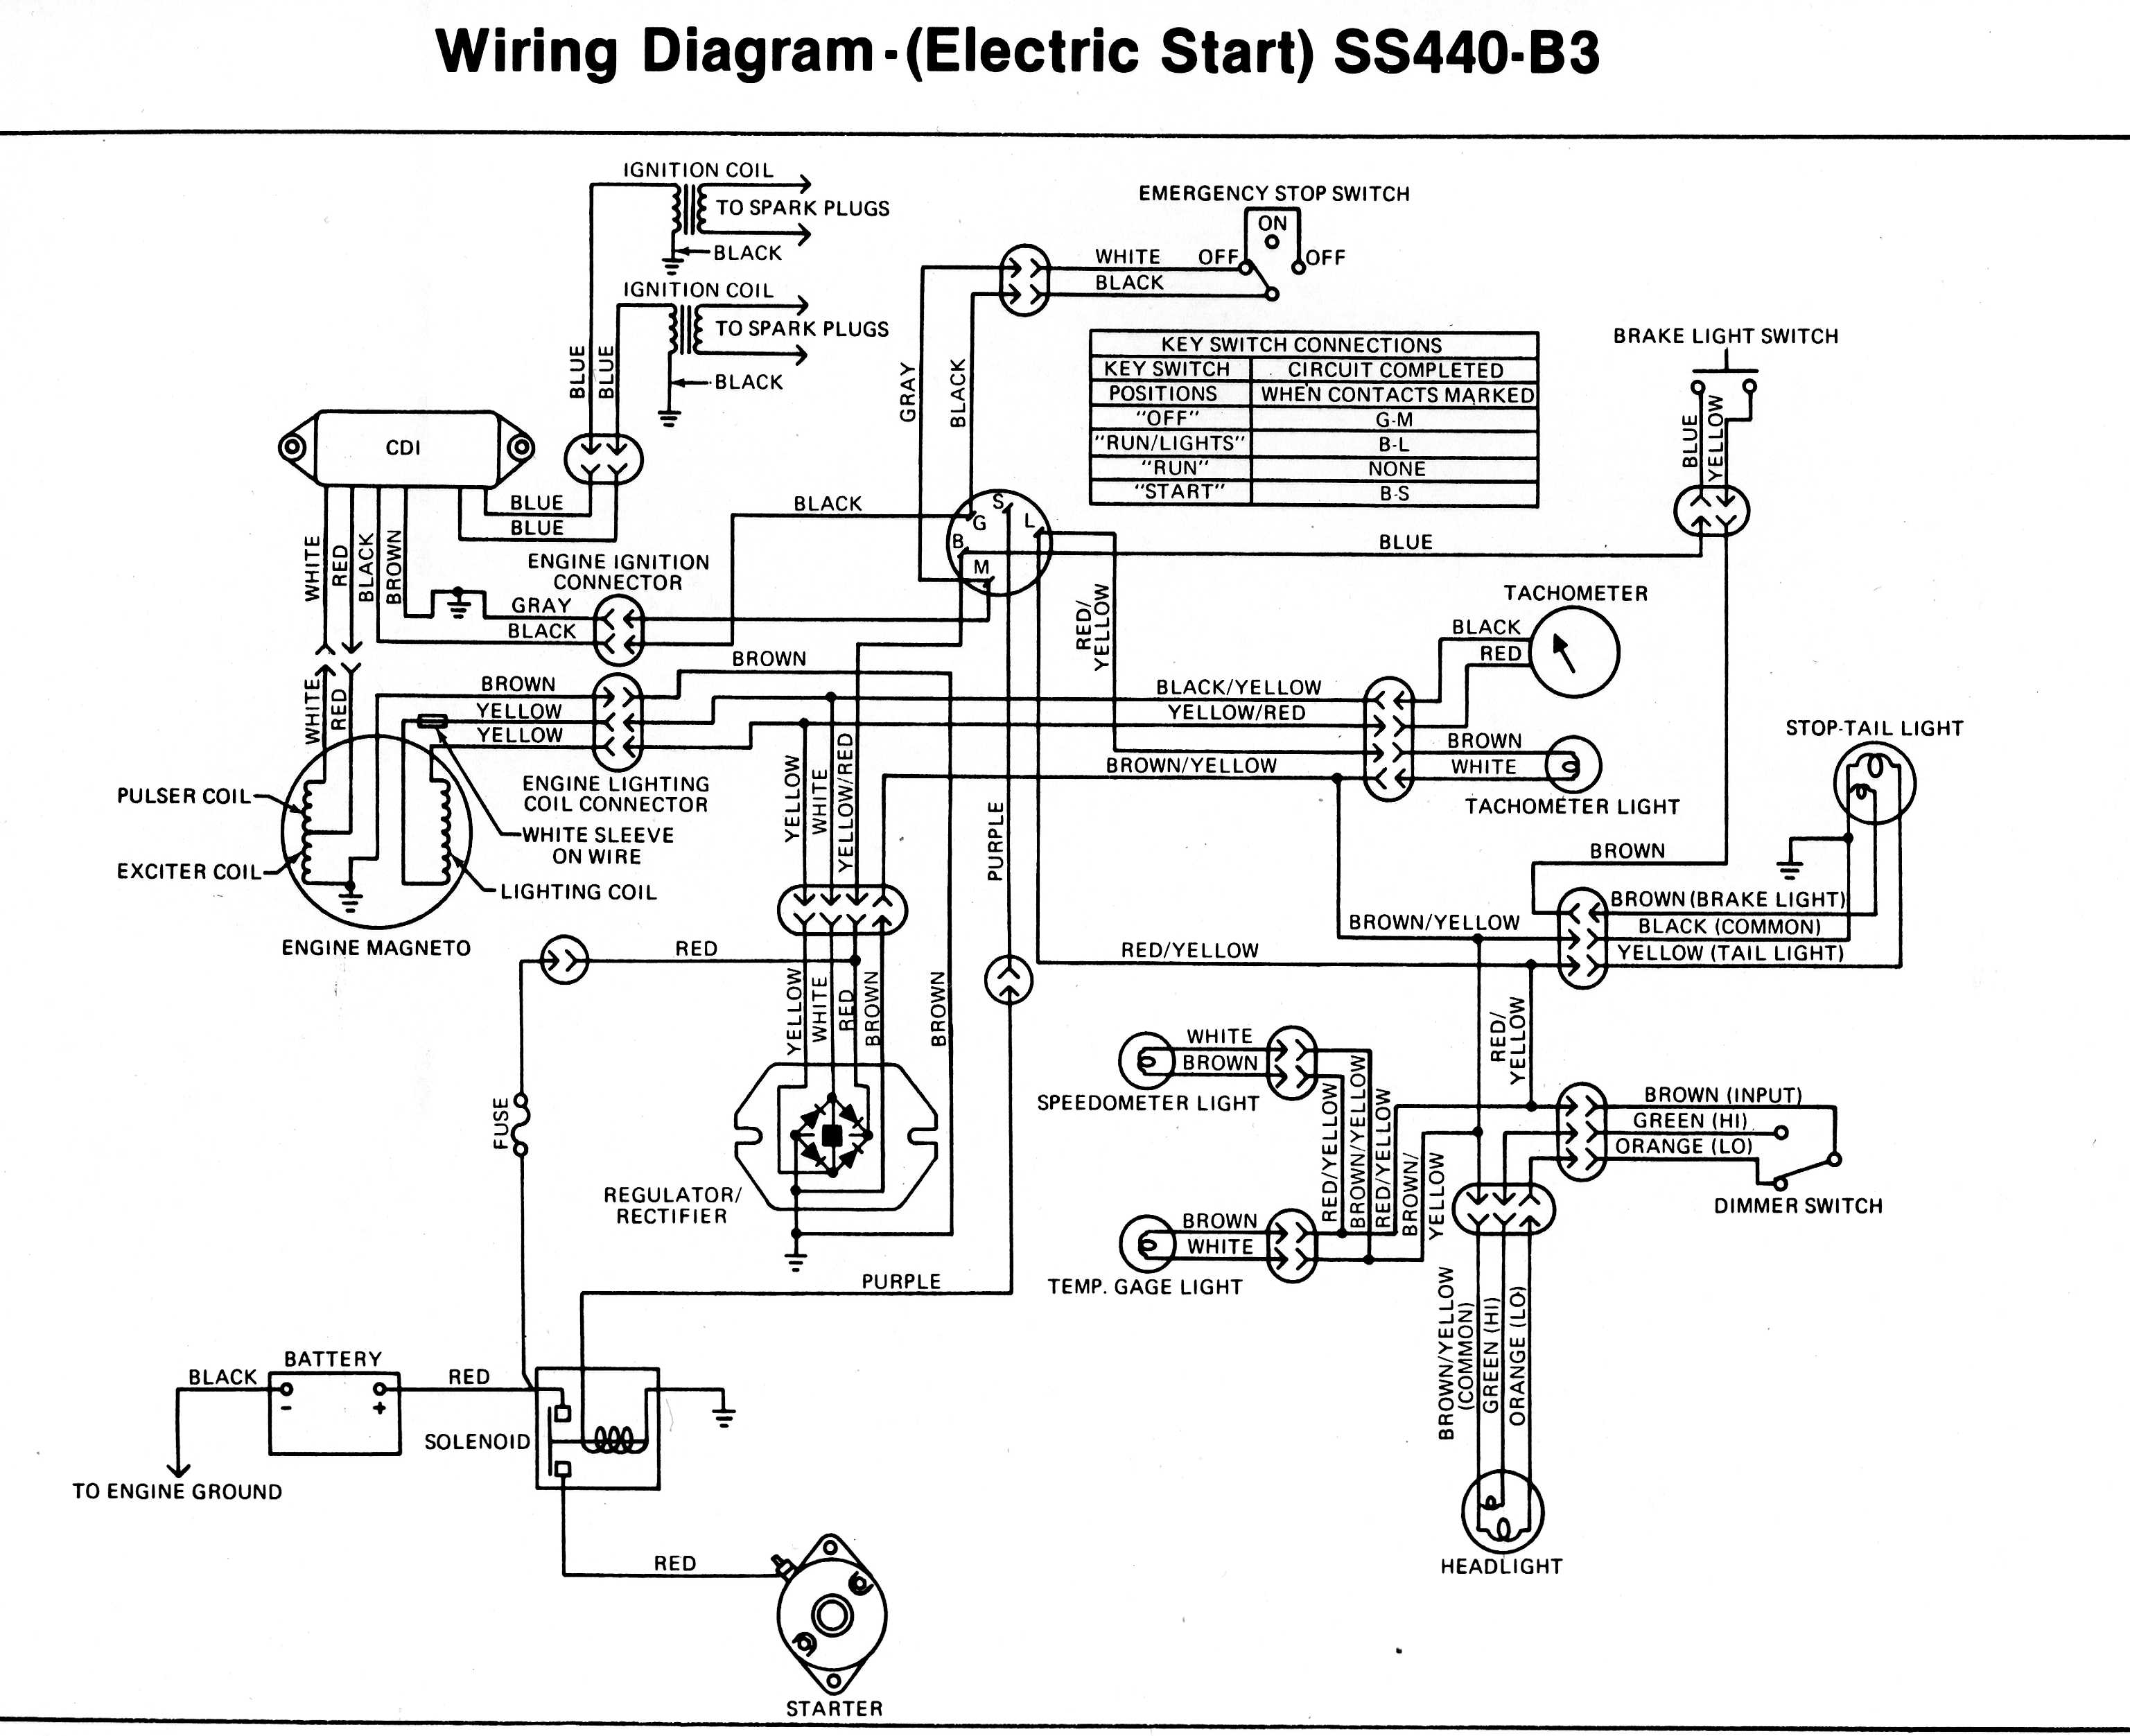 1981 Kawasaki Wiring Diagram - Wiring Diagram Het on honda motorcycle repair diagrams, electrical diagrams, pinout diagrams, engine diagrams, troubleshooting diagrams, lighting diagrams, motor diagrams, switch diagrams, smart car diagrams, gmc fuse box diagrams, internet of things diagrams, hvac diagrams, sincgars radio configurations diagrams, series and parallel circuits diagrams, electronic circuit diagrams, friendship bracelet diagrams, led circuit diagrams, battery diagrams, transformer diagrams,